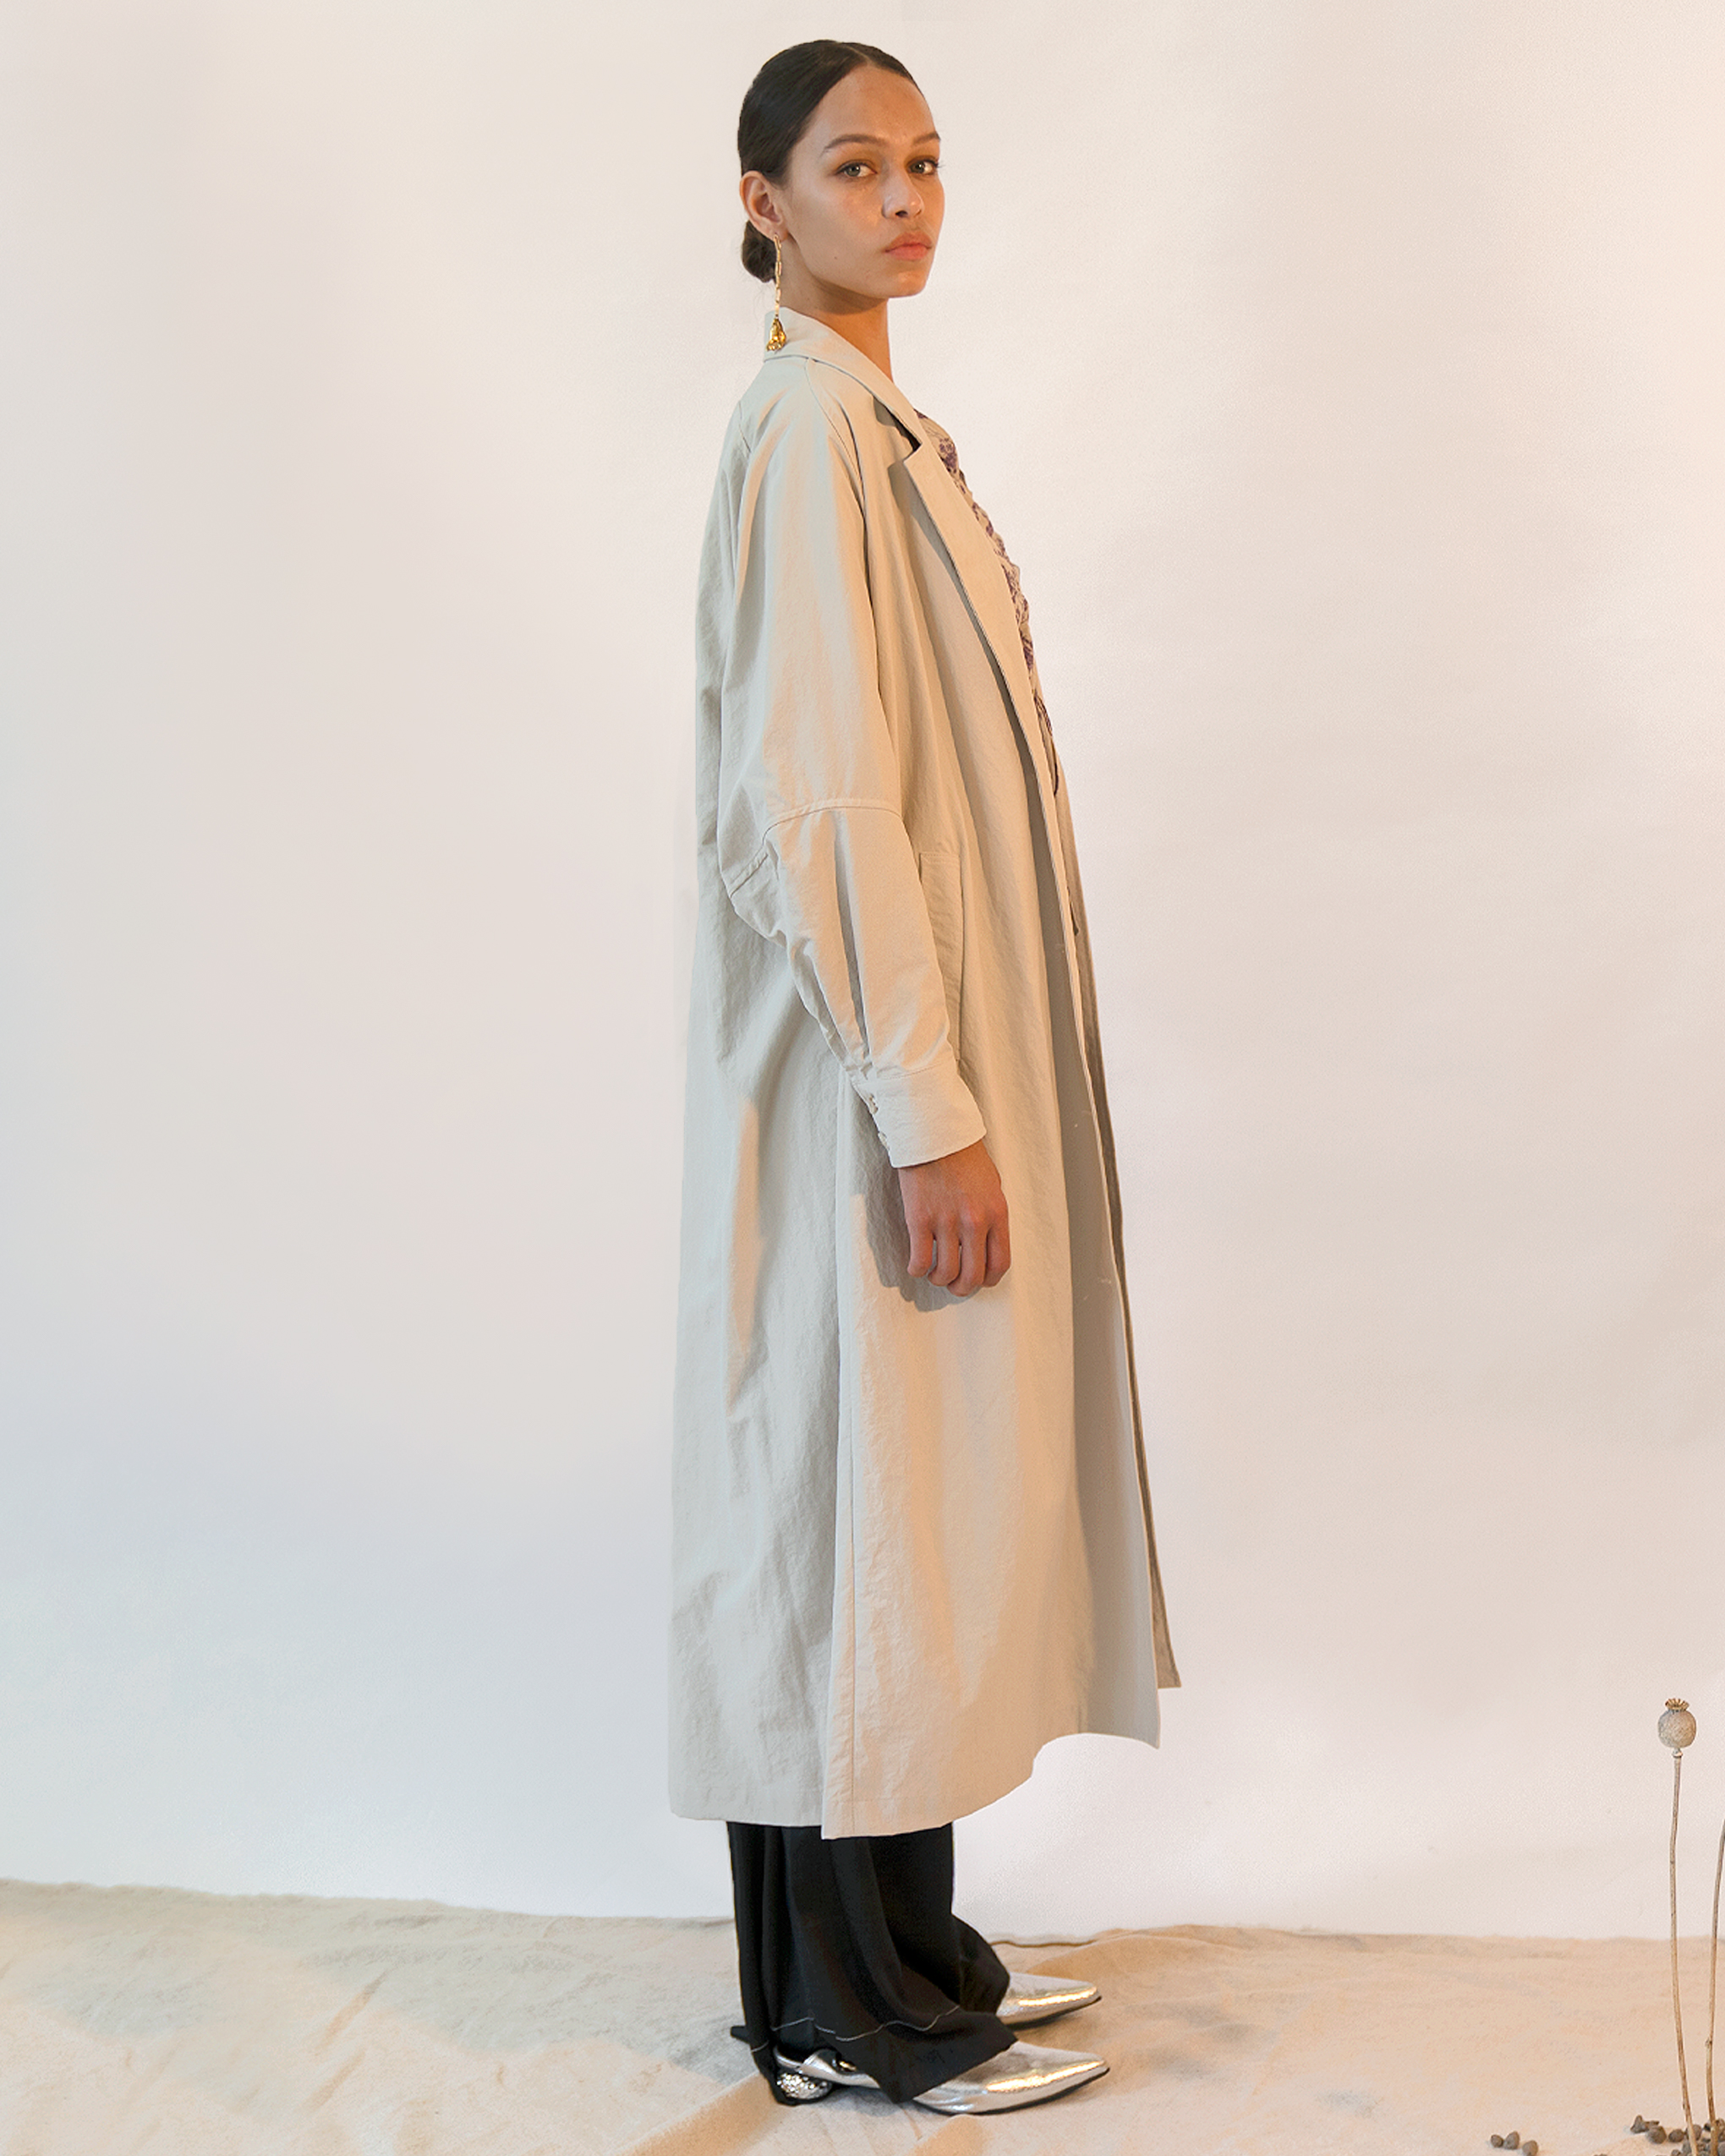 A woman is wearing an off-white oversized coat.